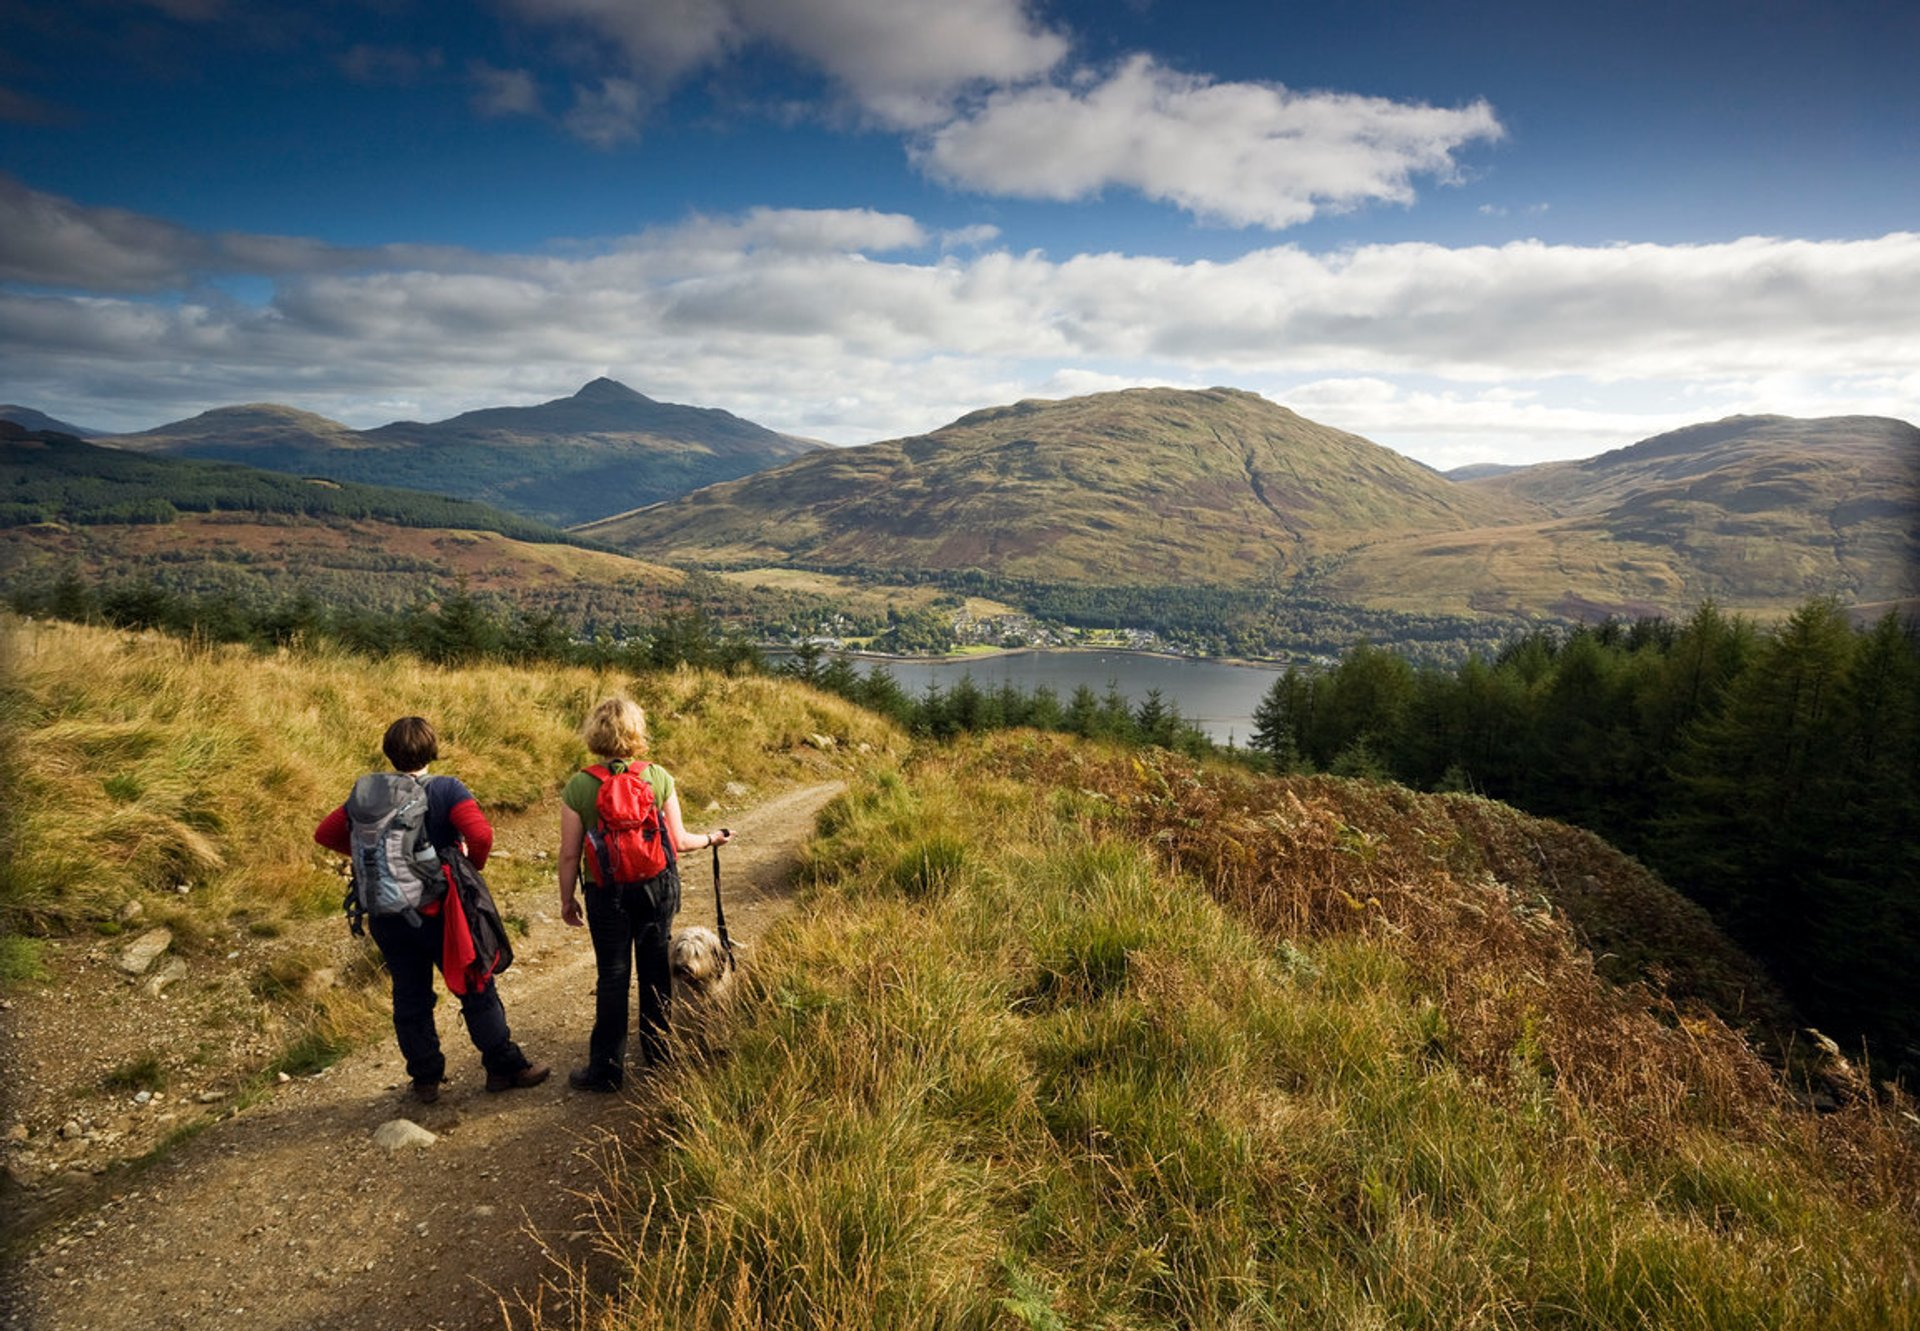 Hillwalking or Munro Bagging in Scotland 2020 - Best Time